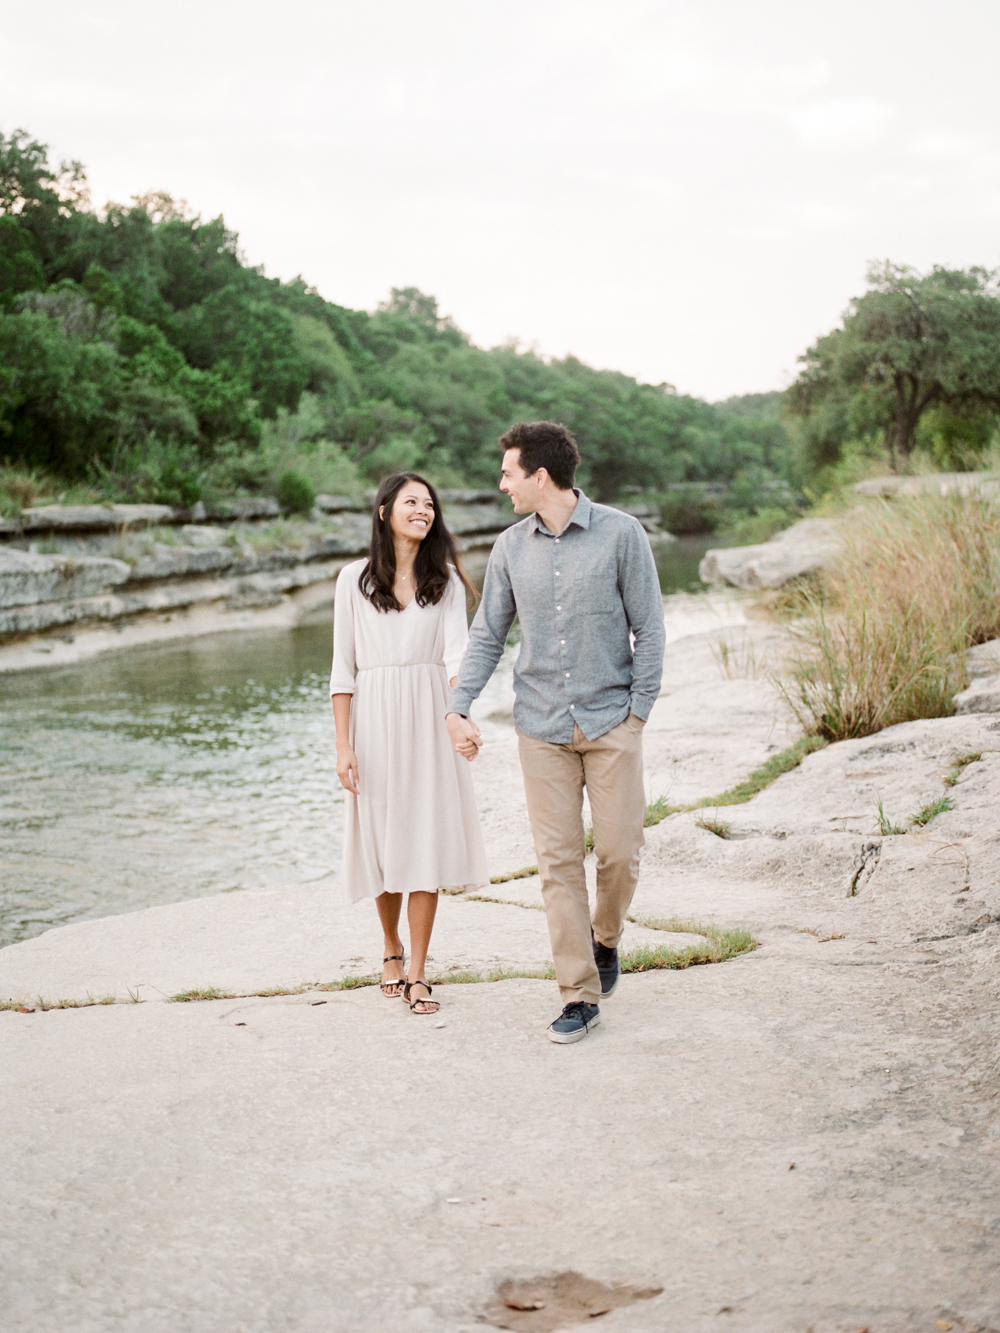 Christine Gosch - destination film photographer - houston wedding photographer - fine art film photographer - elopement photographer - destination wedding - understated wedding - simple beautiful wedding photography-122.jpg